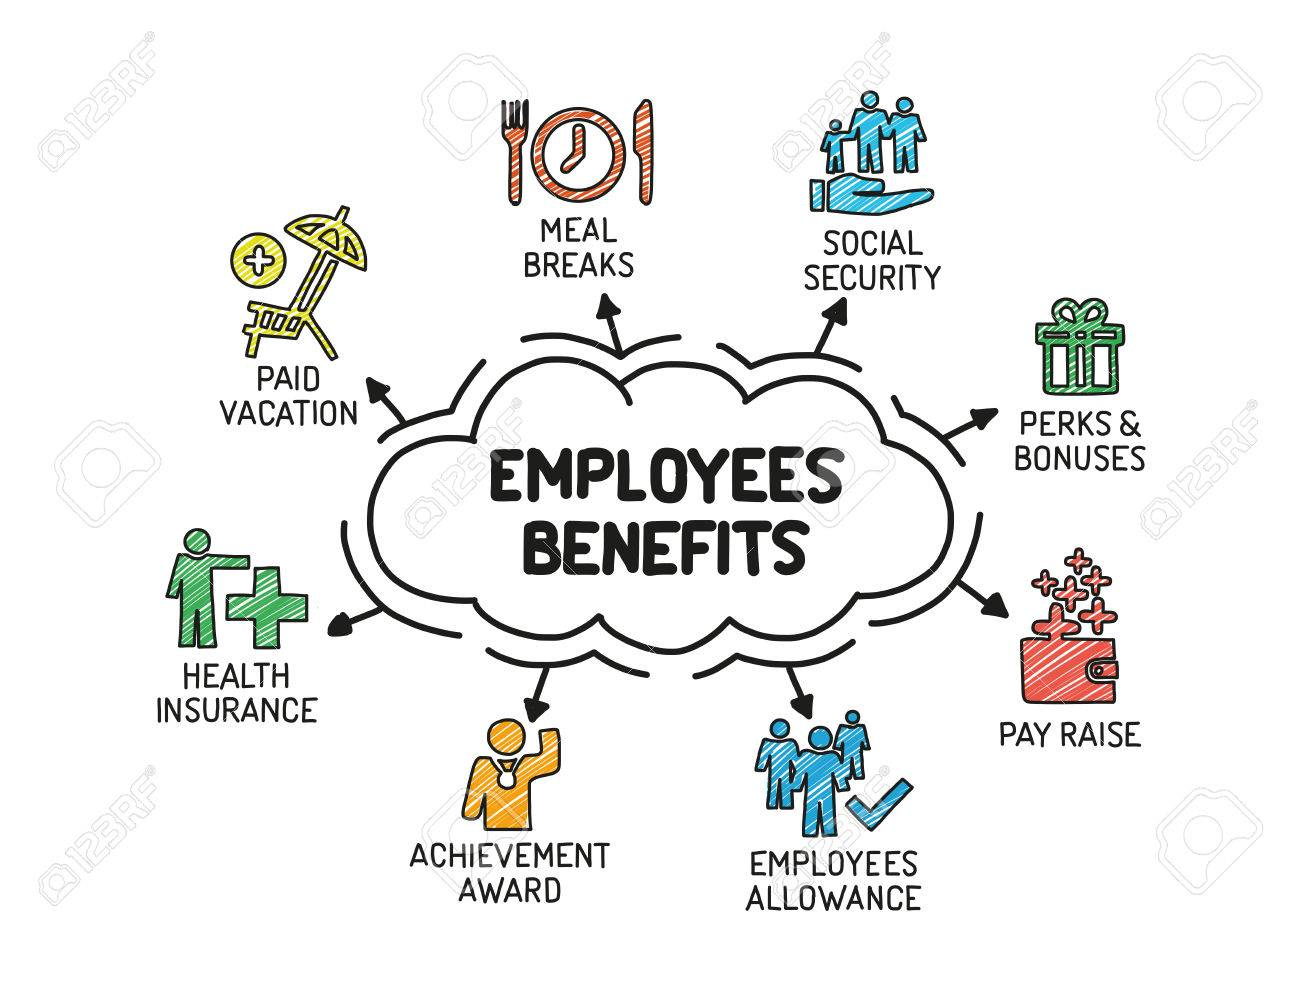 Employee Benefits - Chart with keywords and icons - Flat Design - 61461469